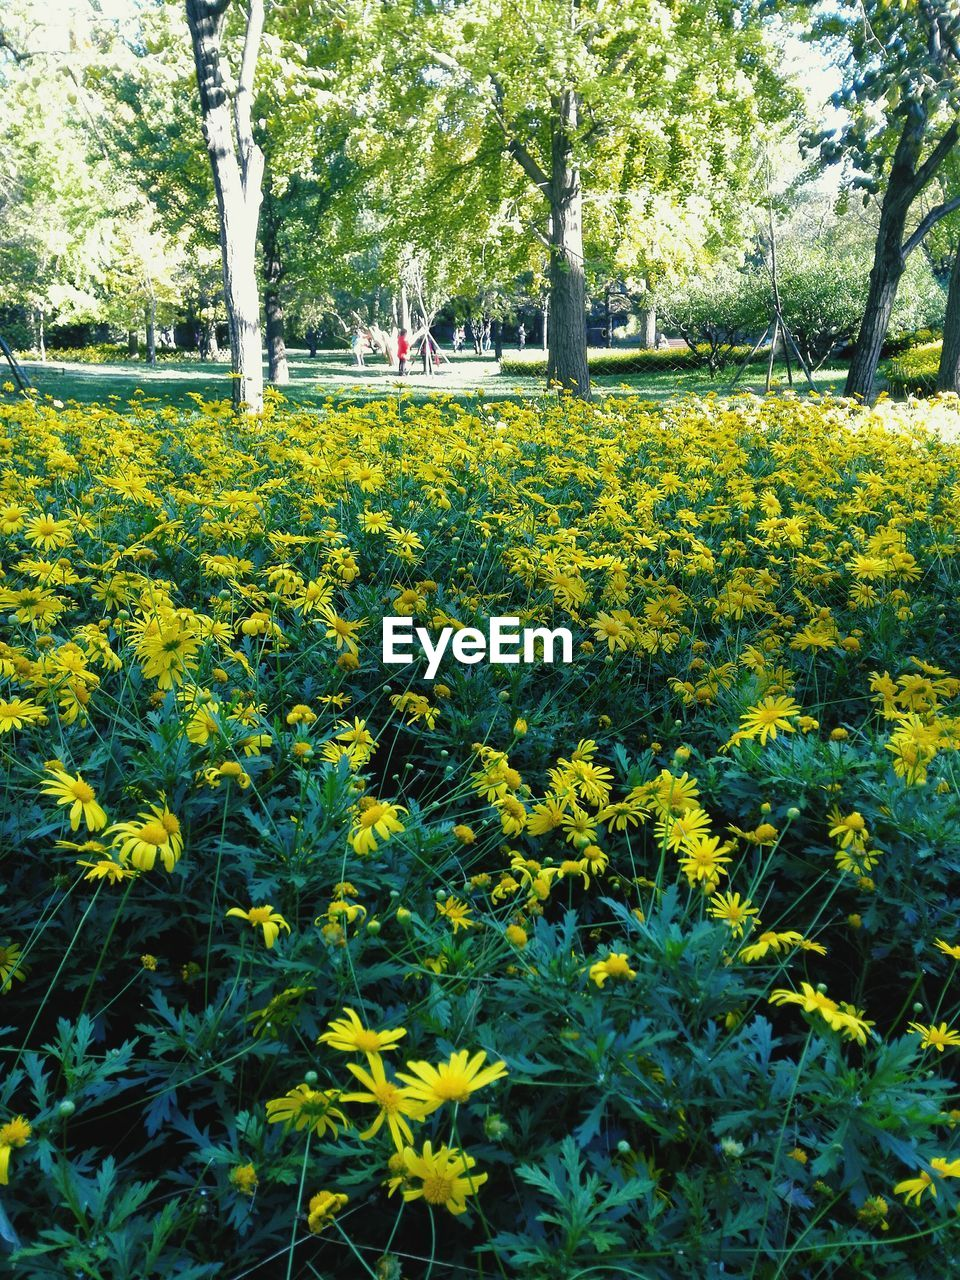 flower, nature, growth, beauty in nature, yellow, tree, outdoors, tranquility, plant, day, field, fragility, park - man made space, blooming, freshness, scenics, no people